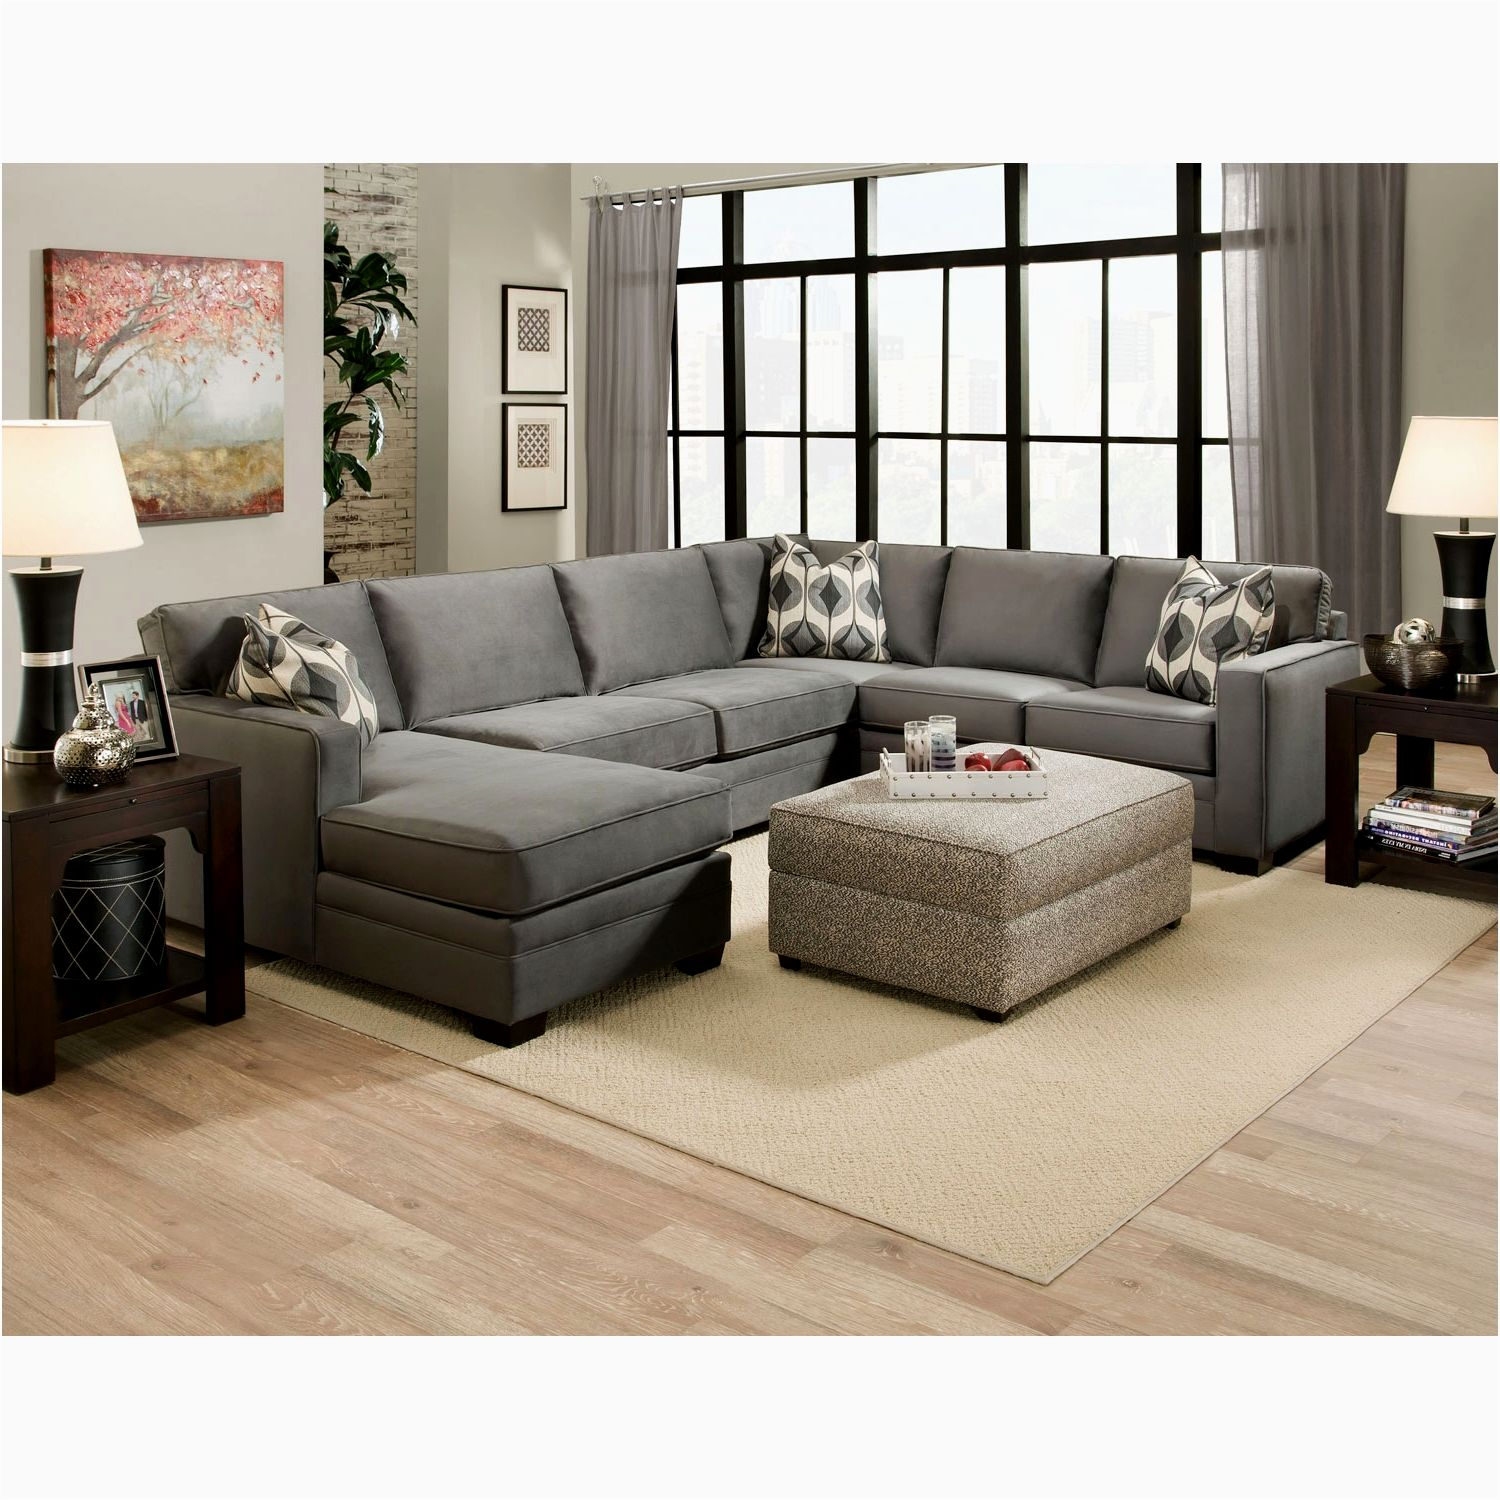 best of ashley furniture sofa chaise photograph-Stylish ashley Furniture sofa Chaise Décor